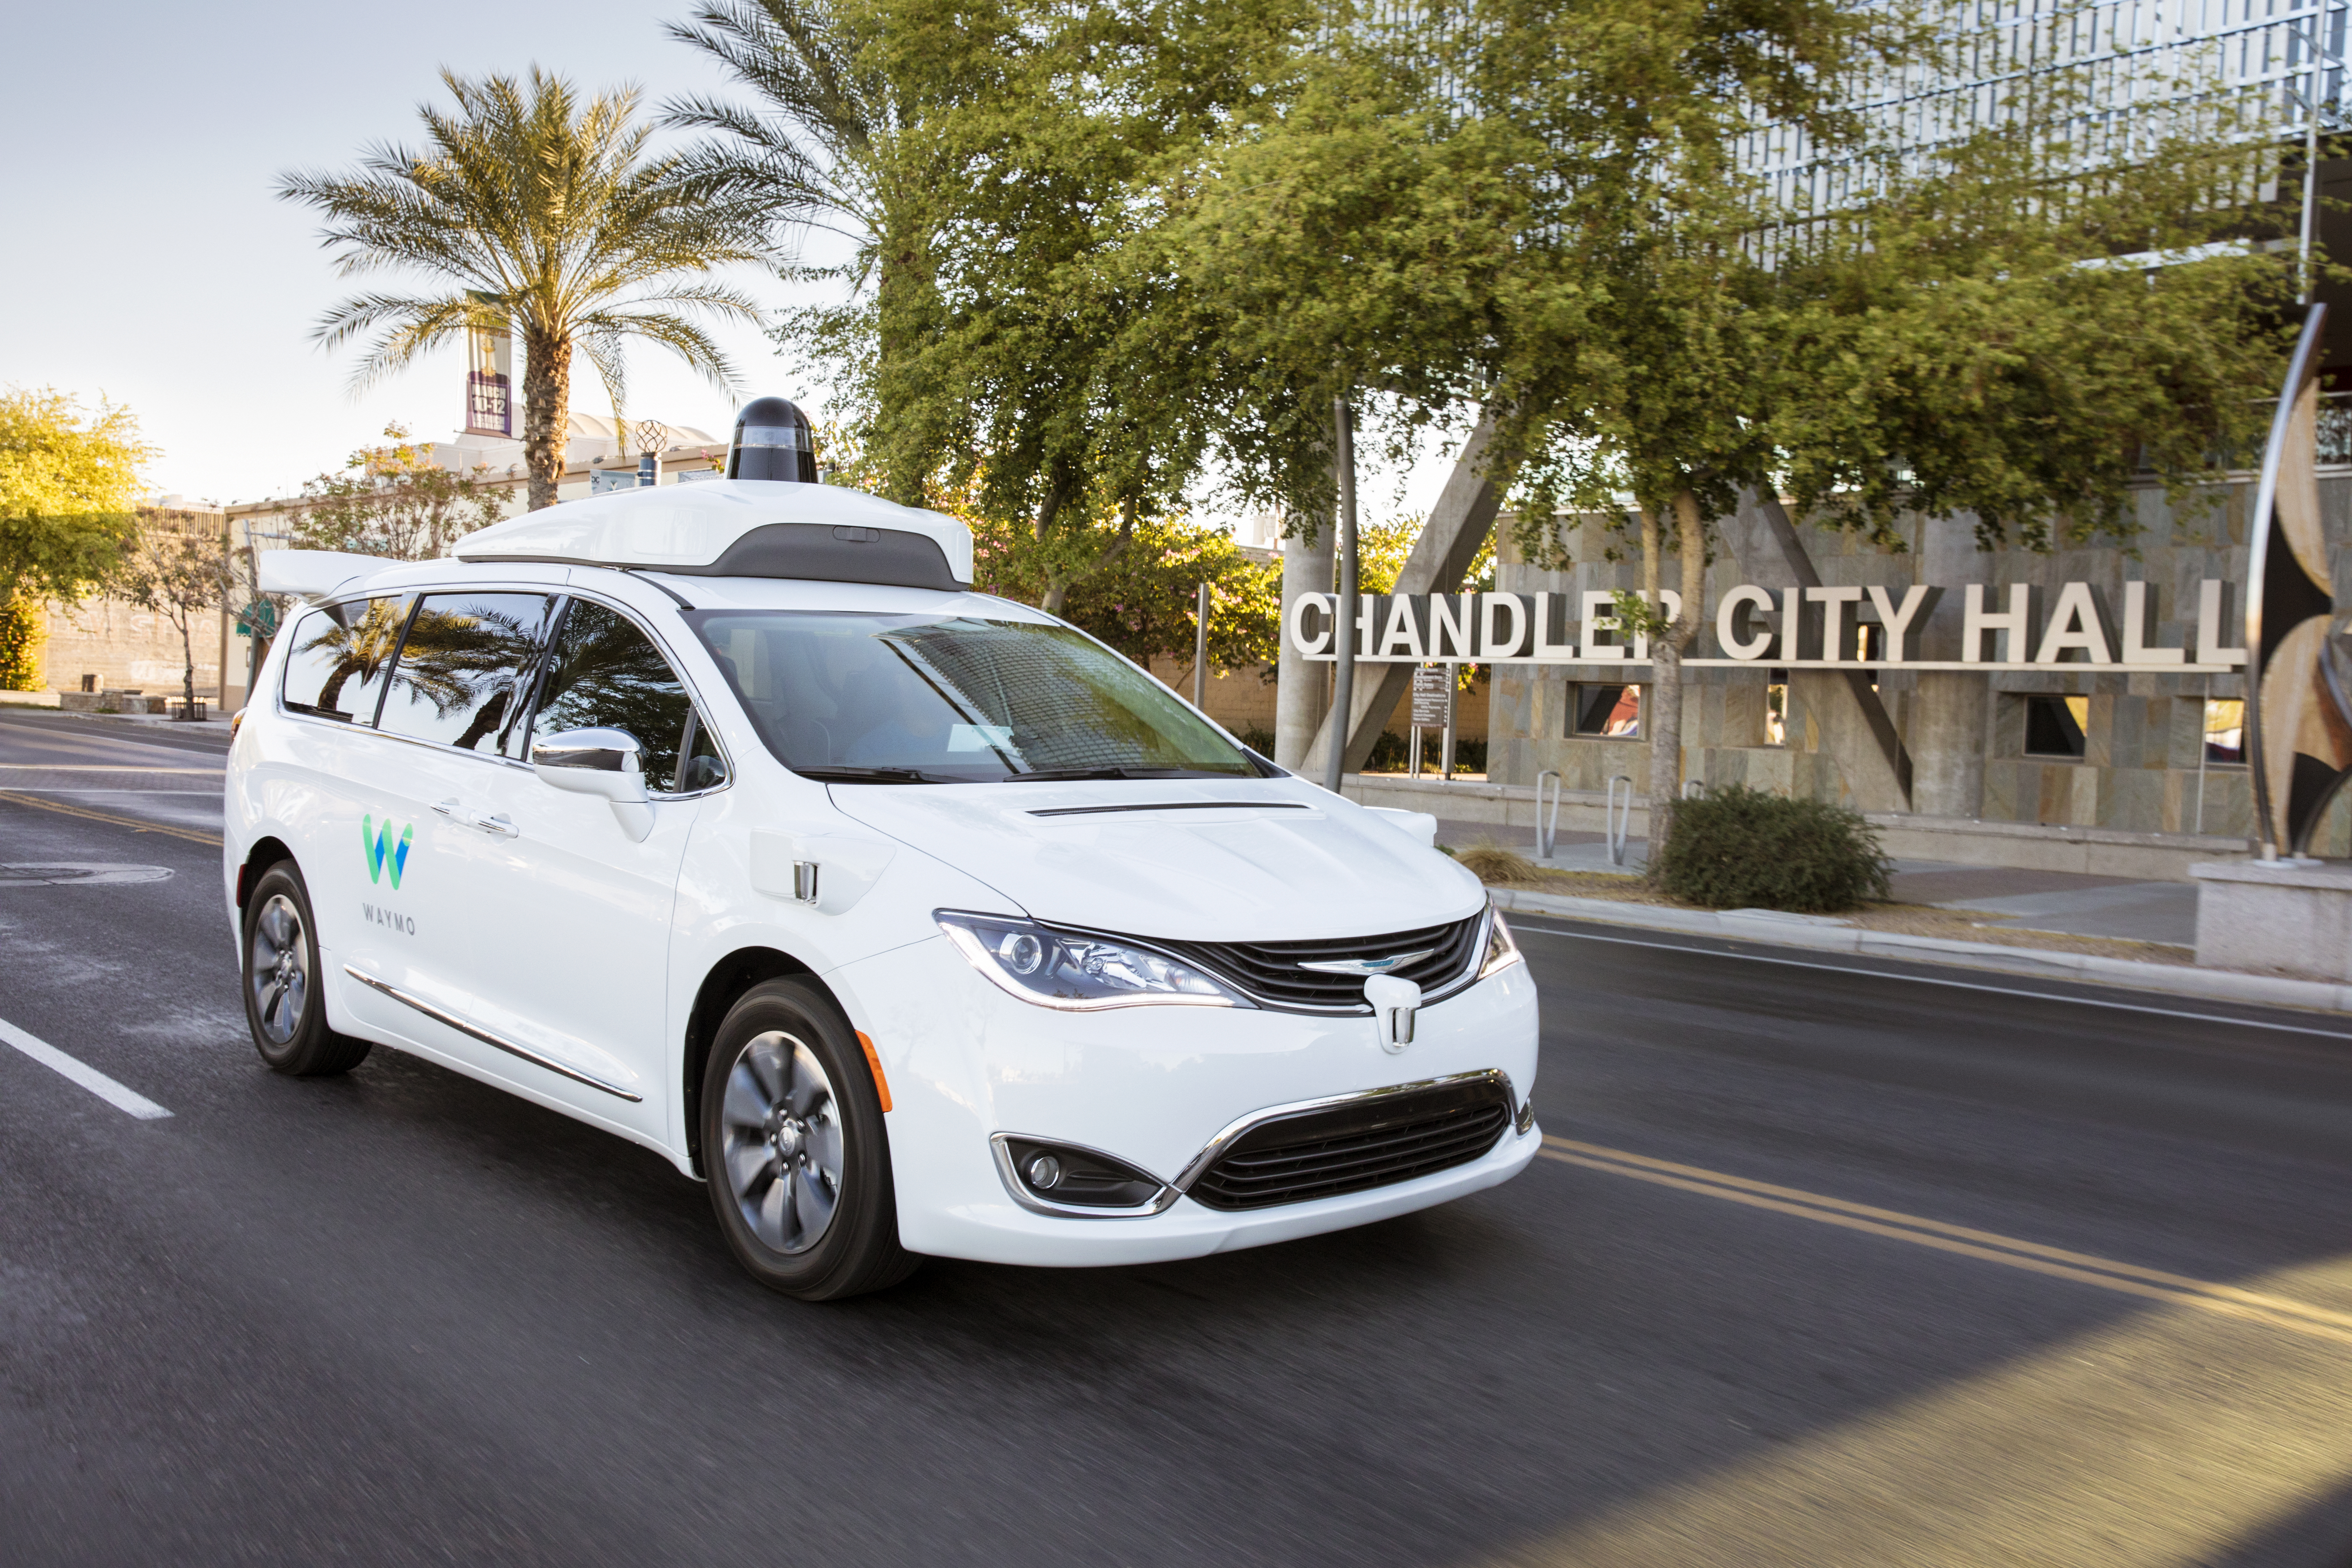 Waymo launched its first public trial of self-driving vehicles in Chandler, Ariz., and other communities in the greater Phoenix area.